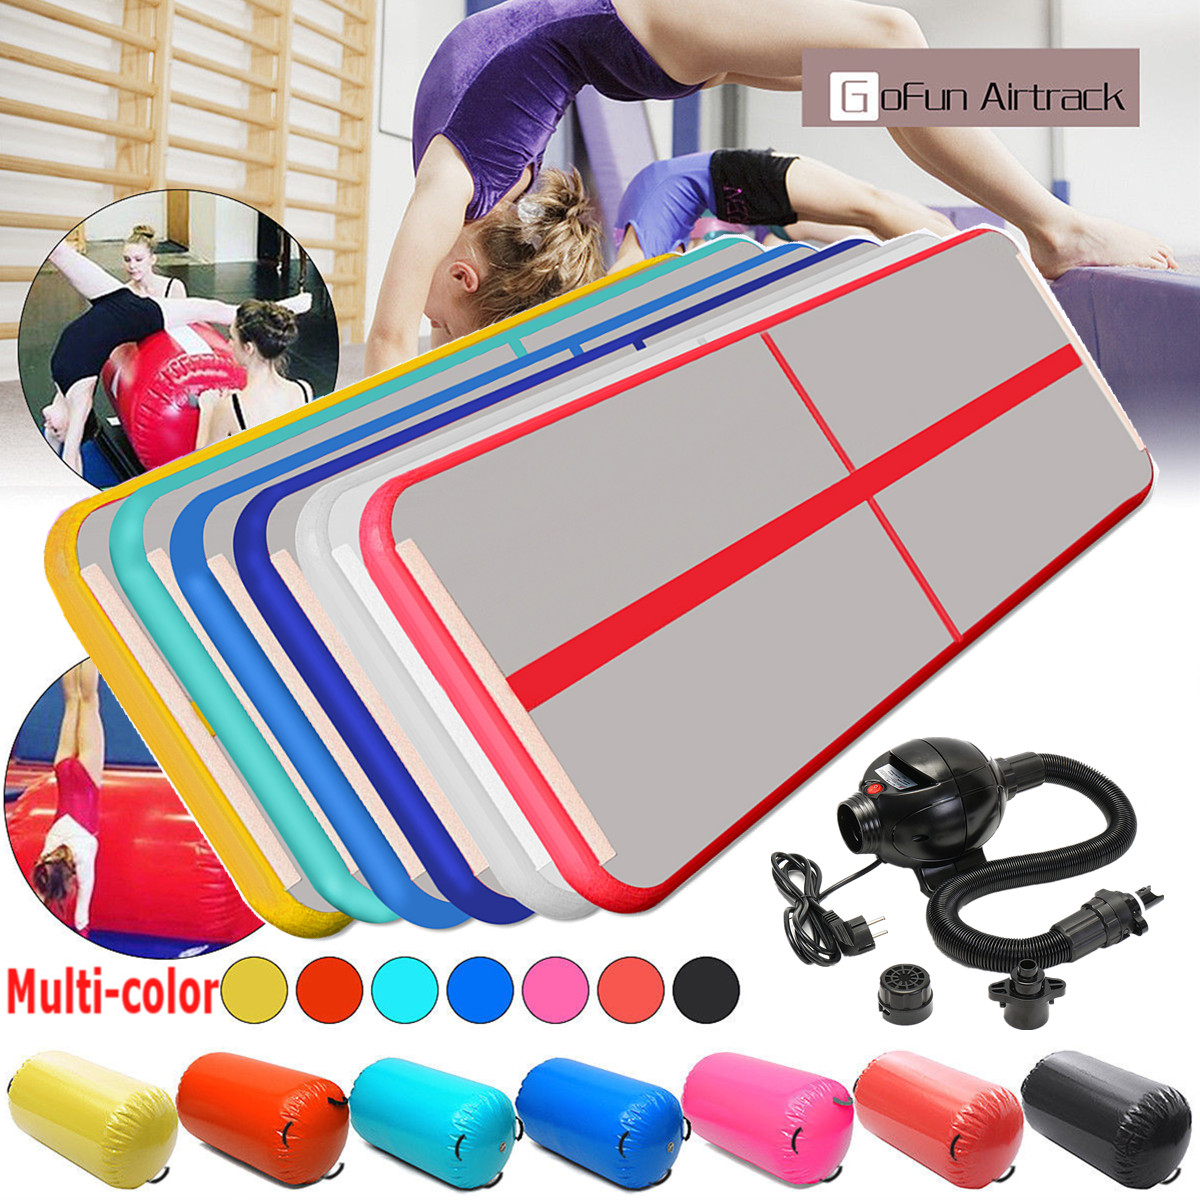 Gofun 118x35x4inch Gym Air Track Floor Pad Home Gymnastics Tumbling Inflatable Rolling Mat 8m gymnastics air track fitness exercise gym air tumbling mat training inflatable track floor home gymnastic high quality